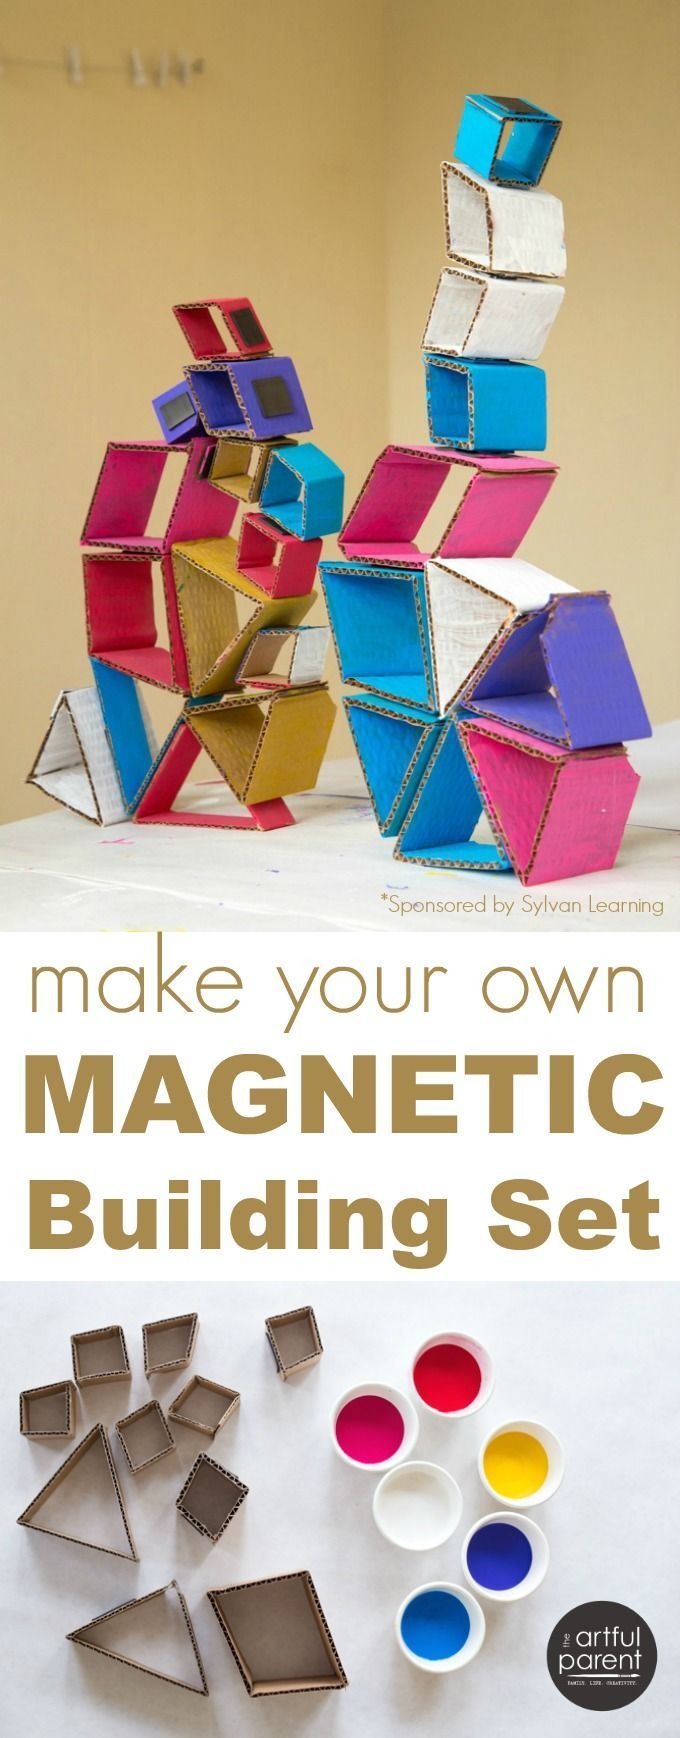 How to make scrapbook using recycled materials - How To Make Your Own Magnetic Building Set With Cardboard